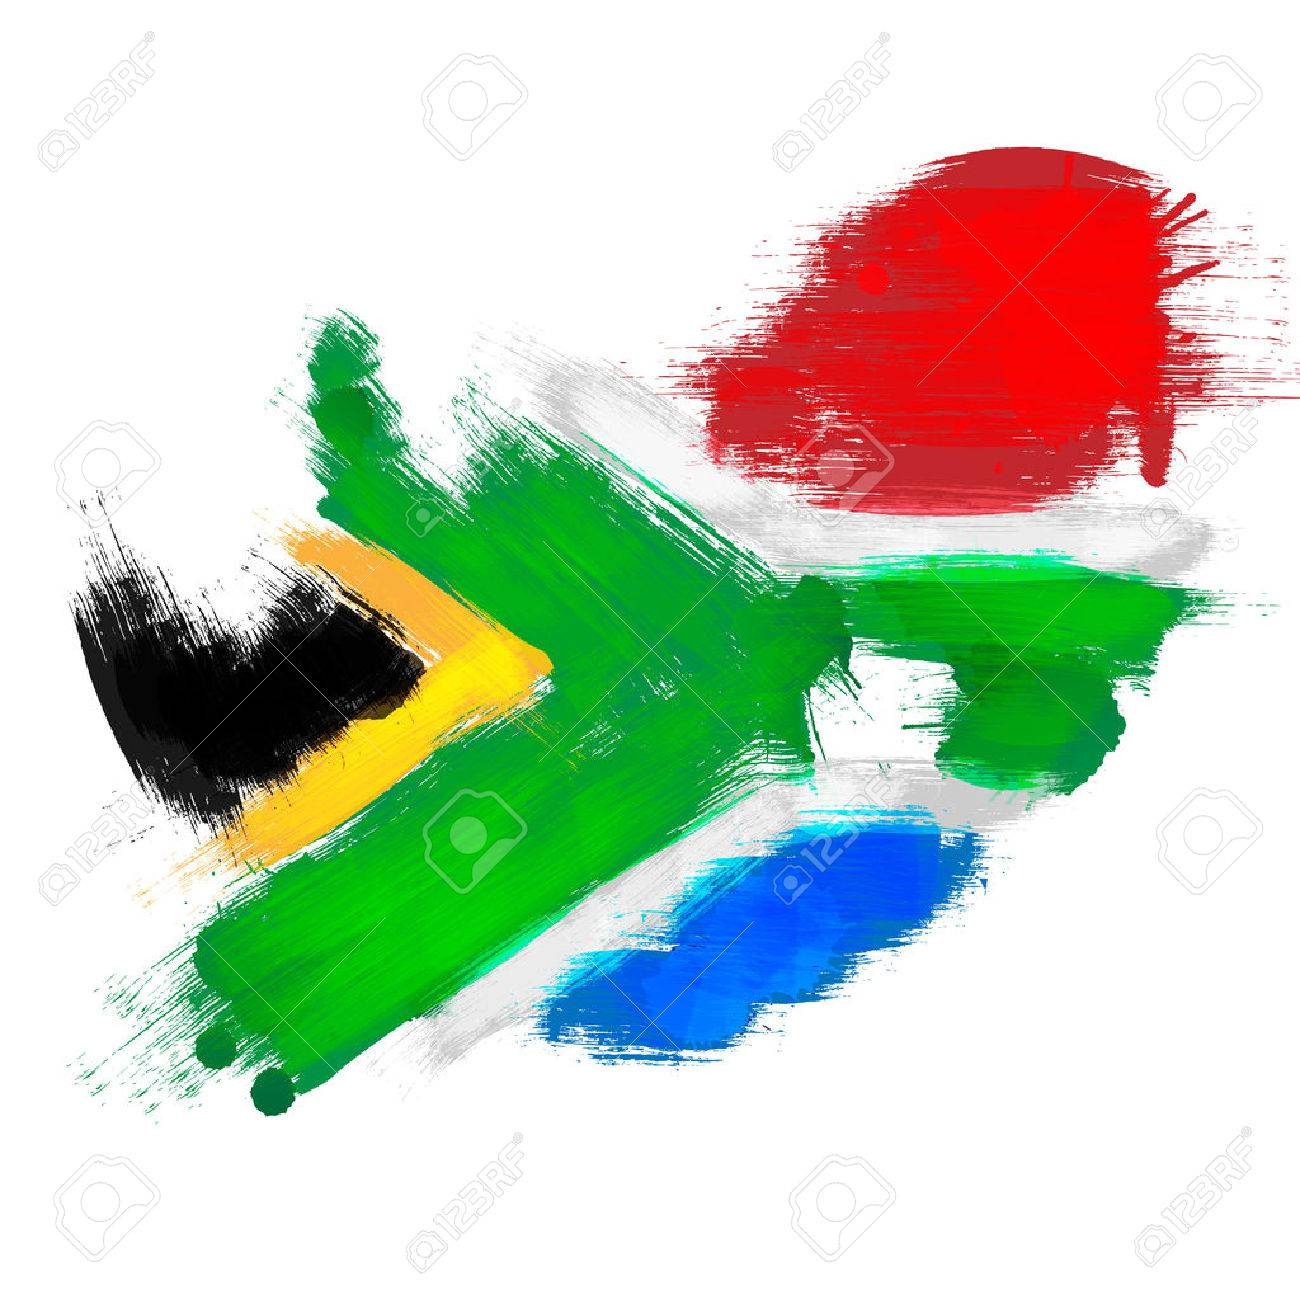 South Africa Flag In Africa Map.Grunge Map Of South Africa With South African Flag